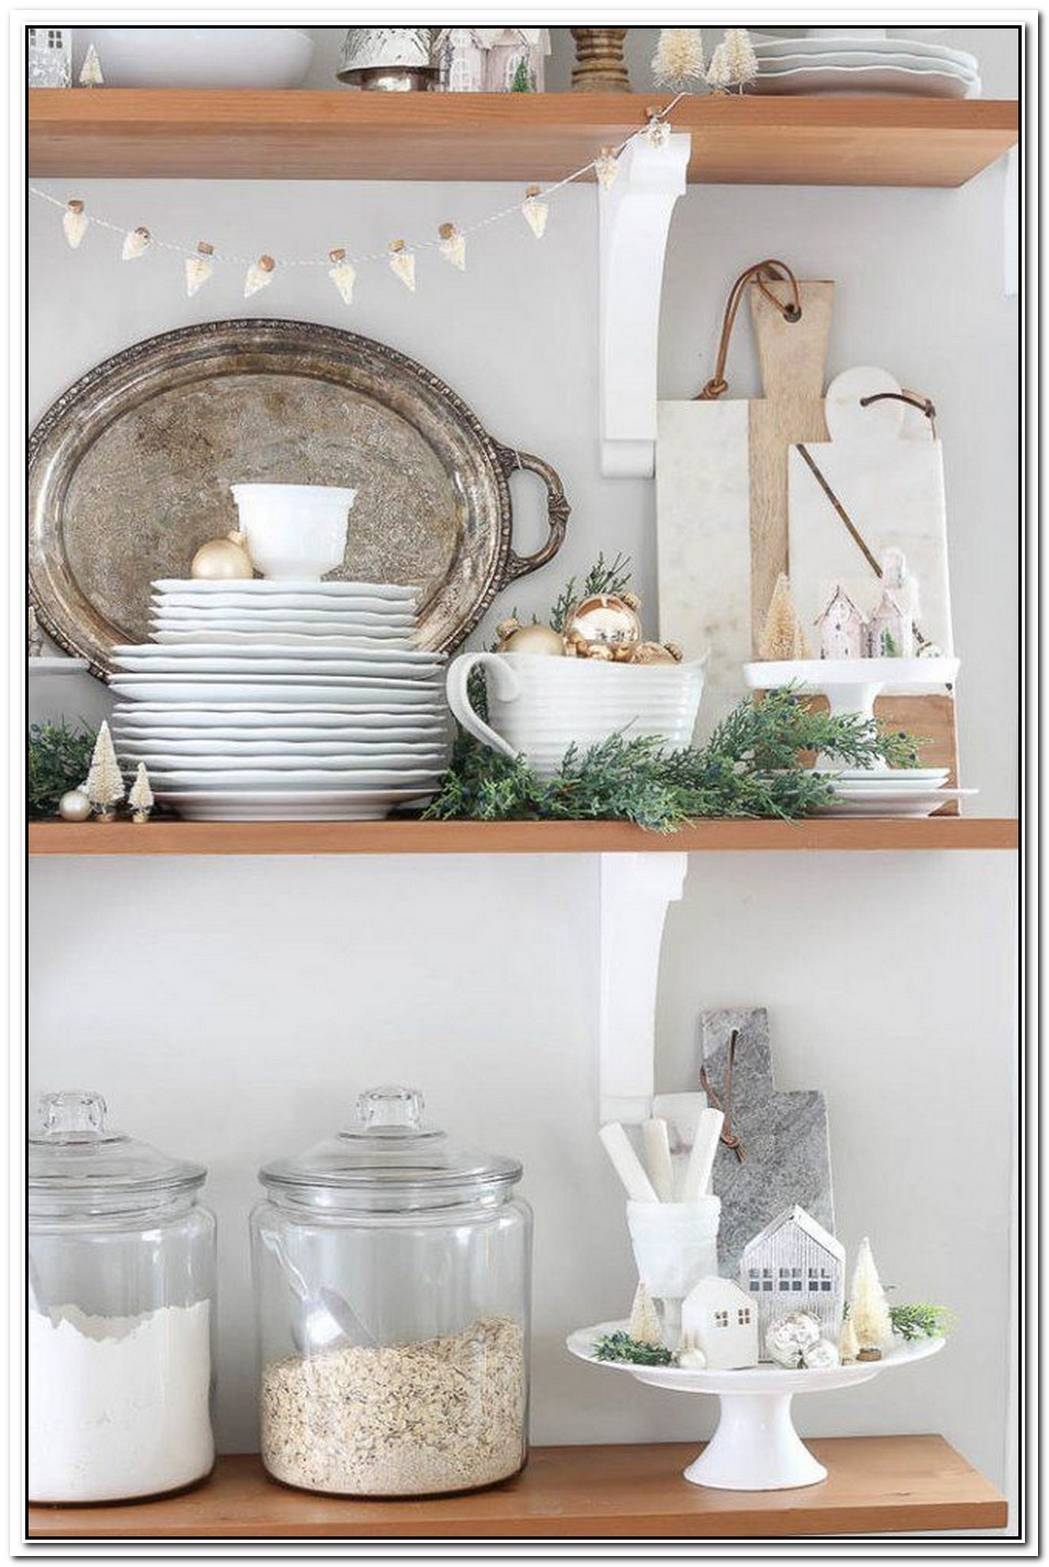 11 Silver And Gold Holiday Decorating Ideas To Transform Your Winter Abode